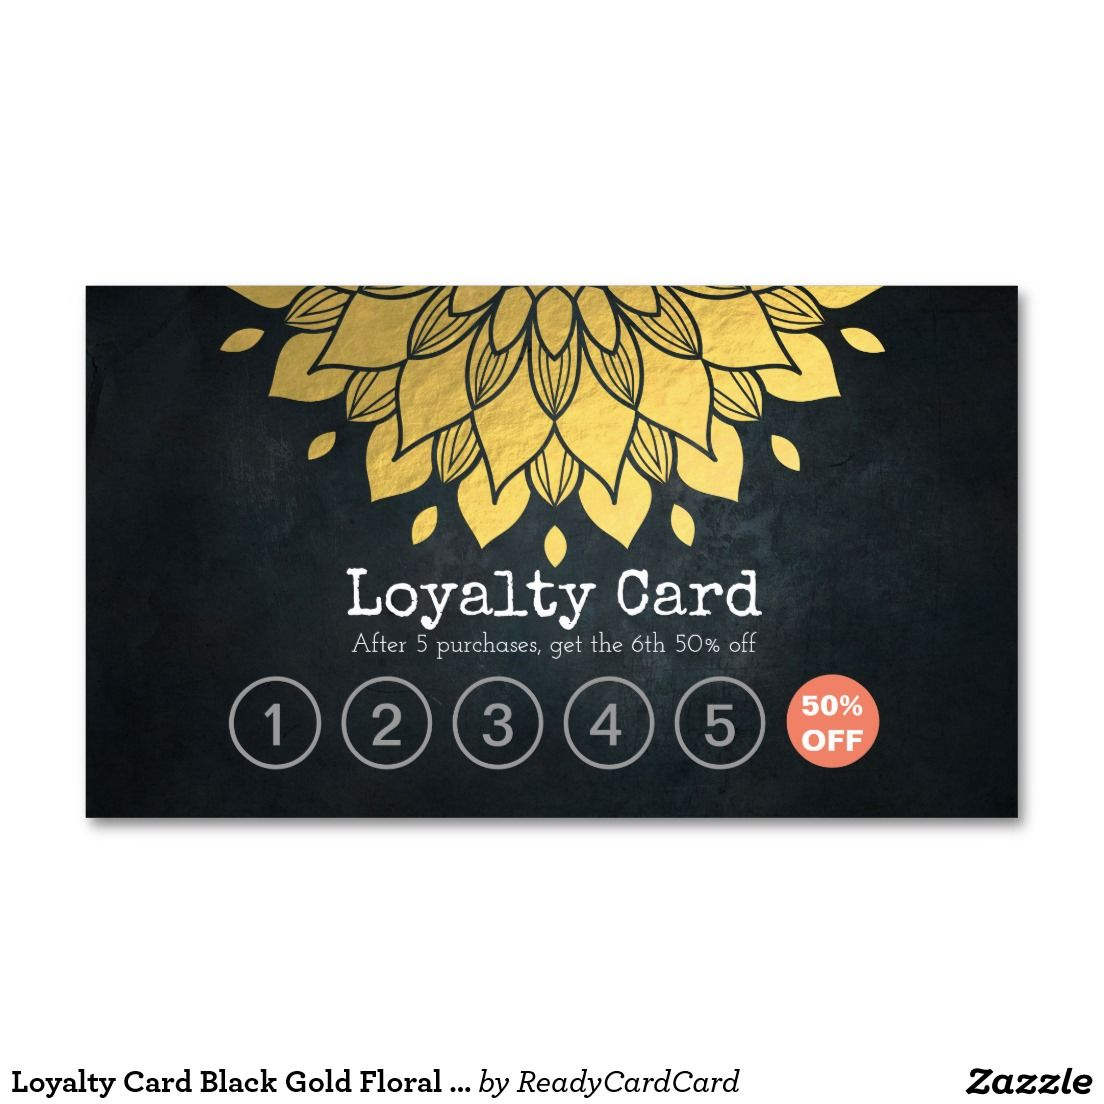 Loyalty card black gold floral makeup hair stylist business card loyalty card black gold floral makeup hair stylist business card reheart Image collections